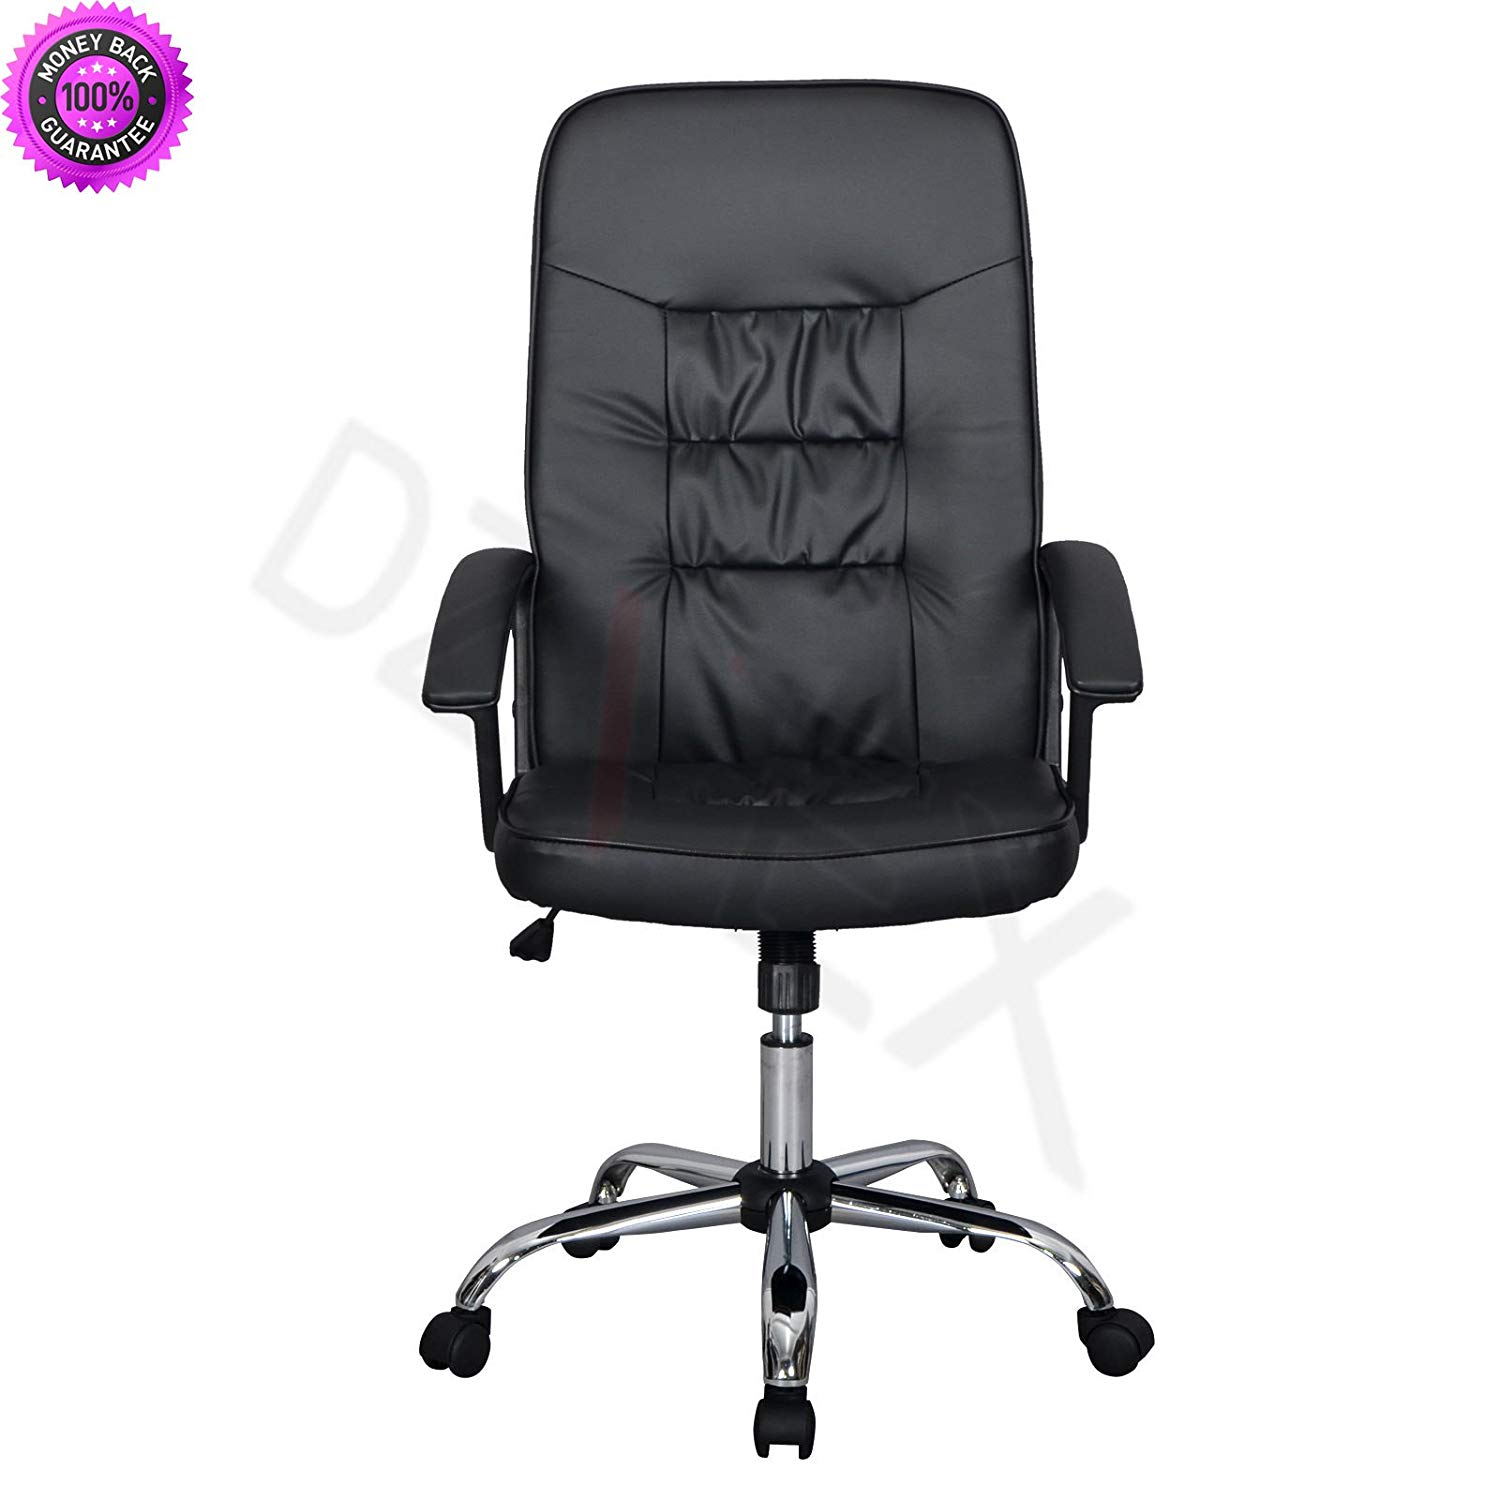 DzVeX_Black High Back Executive Office PU Leather Ergonomic Chair Computer Desk T63 And Add sensible style to your home office or at-work space with this high back leather office chair. Its modern